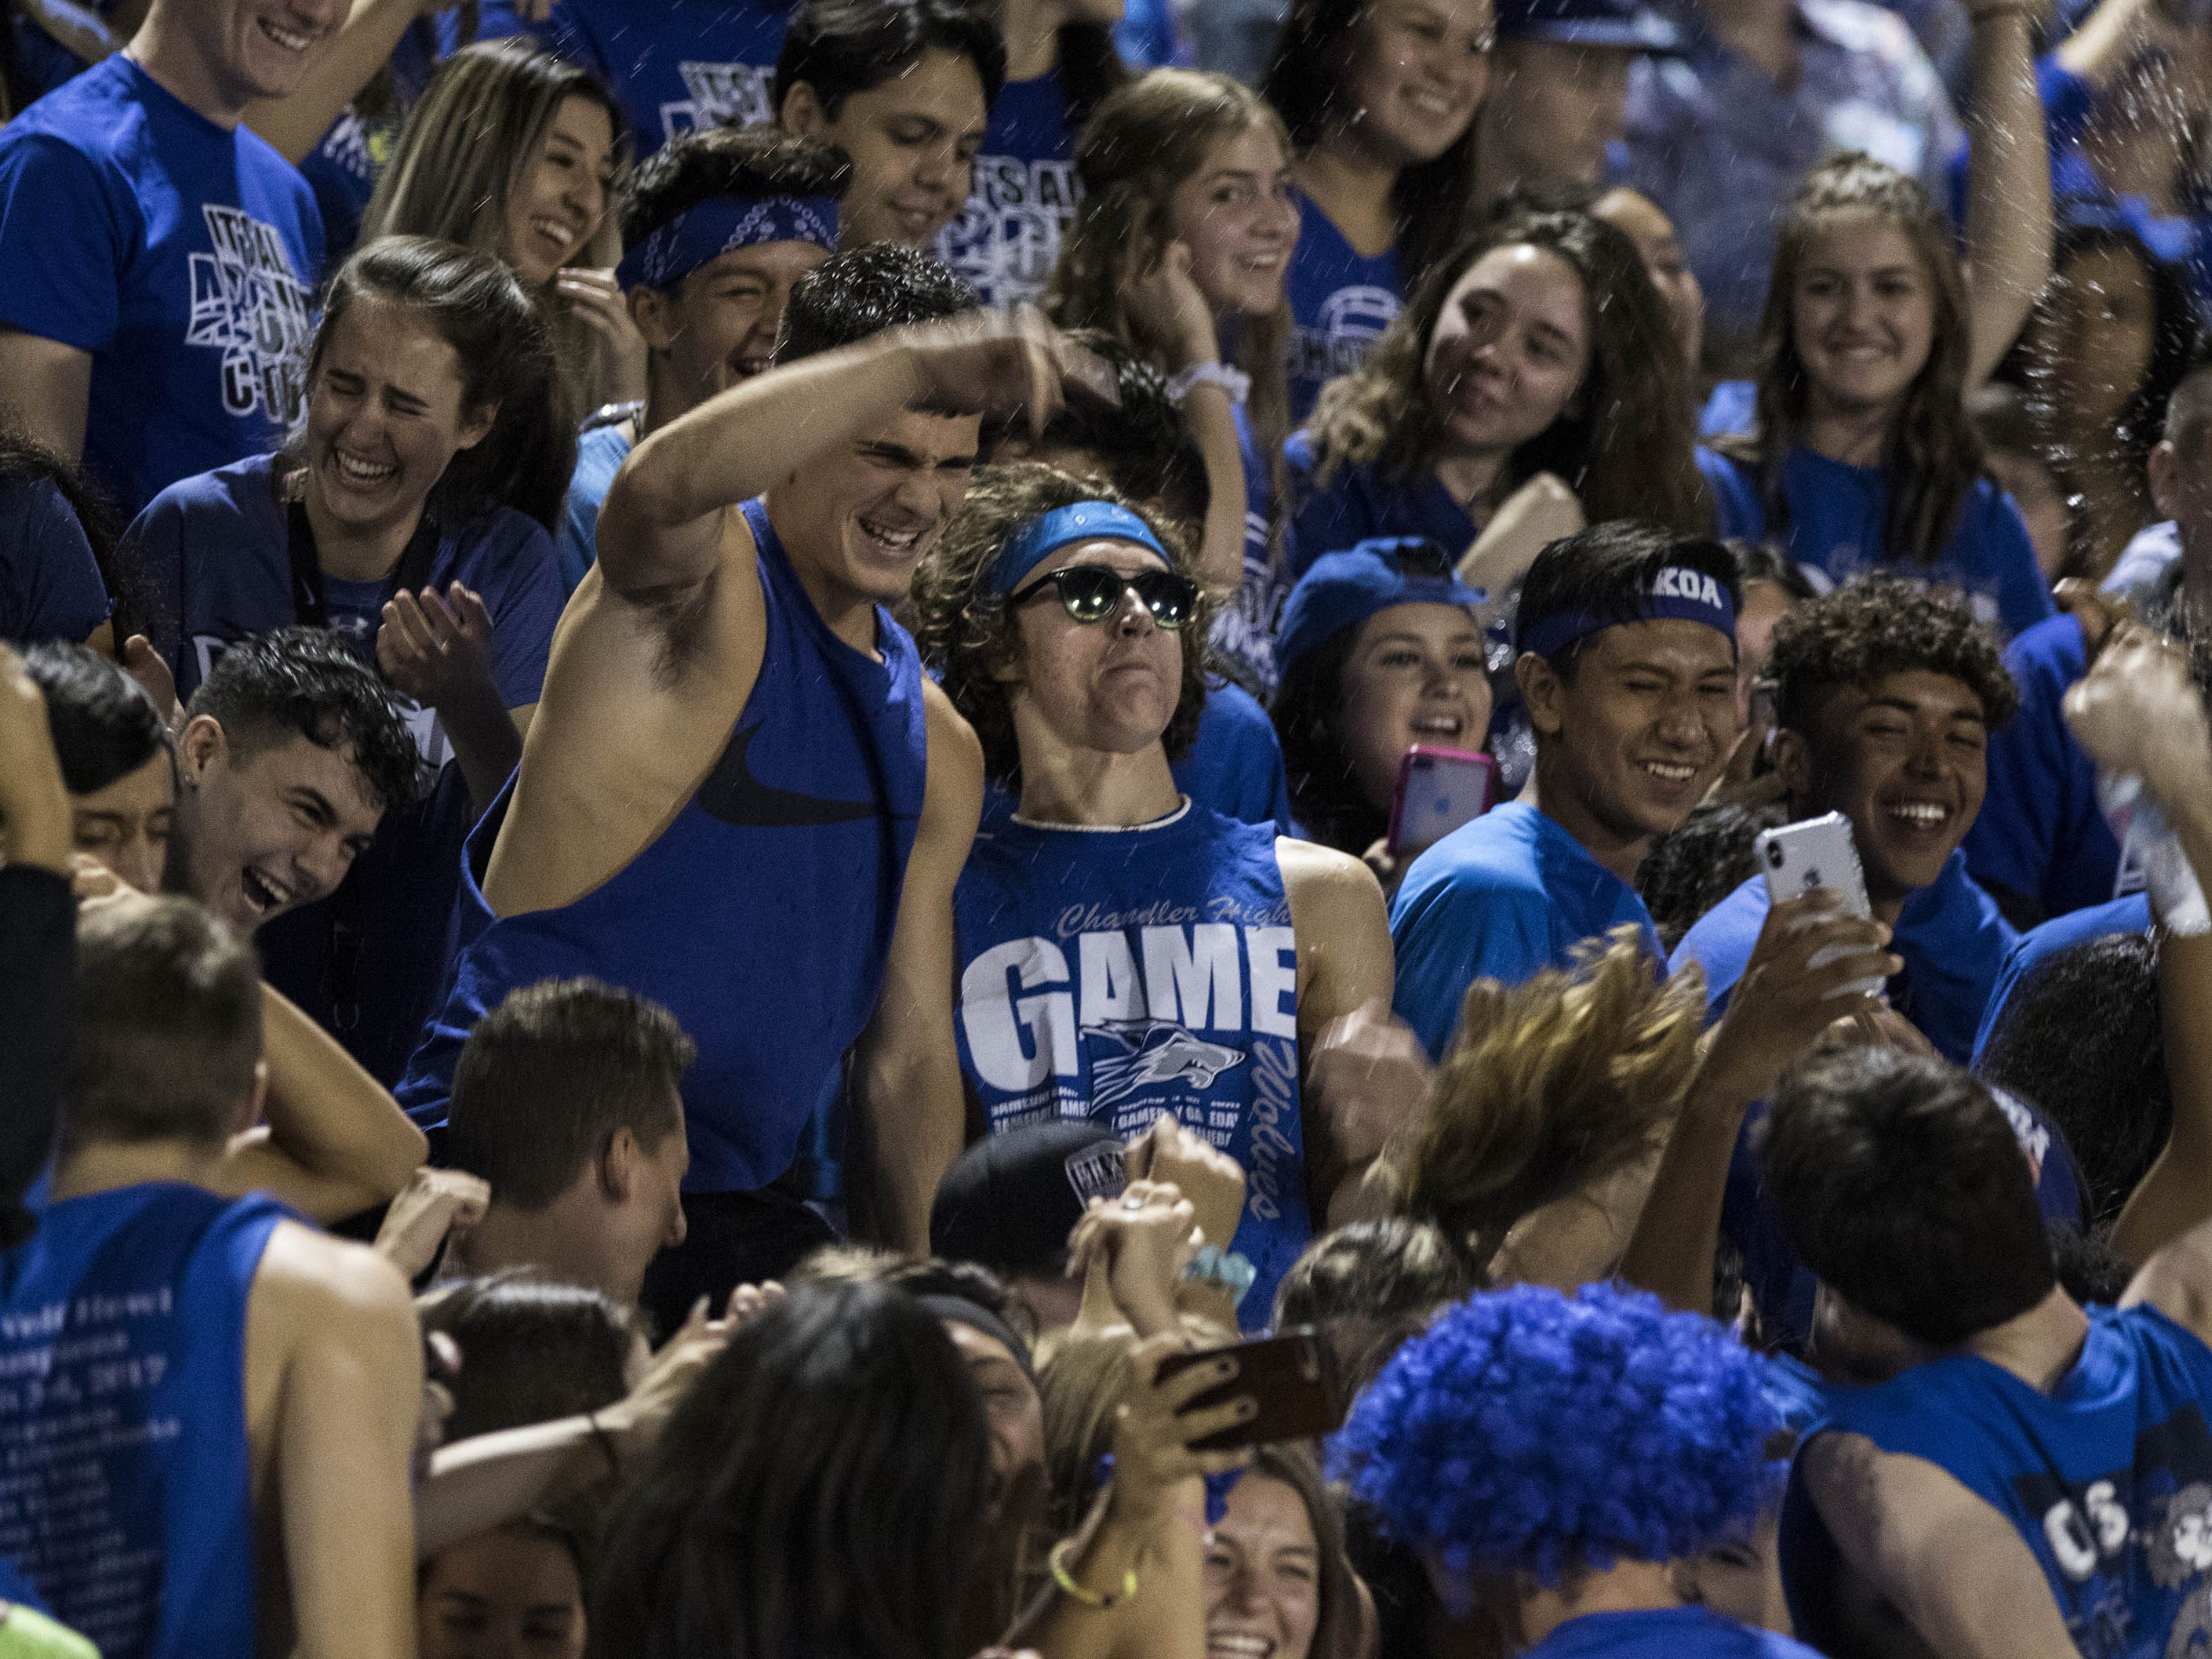 Chandler High School students have fun as their team plays against crosstown rivals the Hamilton Huskies in Chandler, Friday, Oct. 26, 2018. #azhsfb